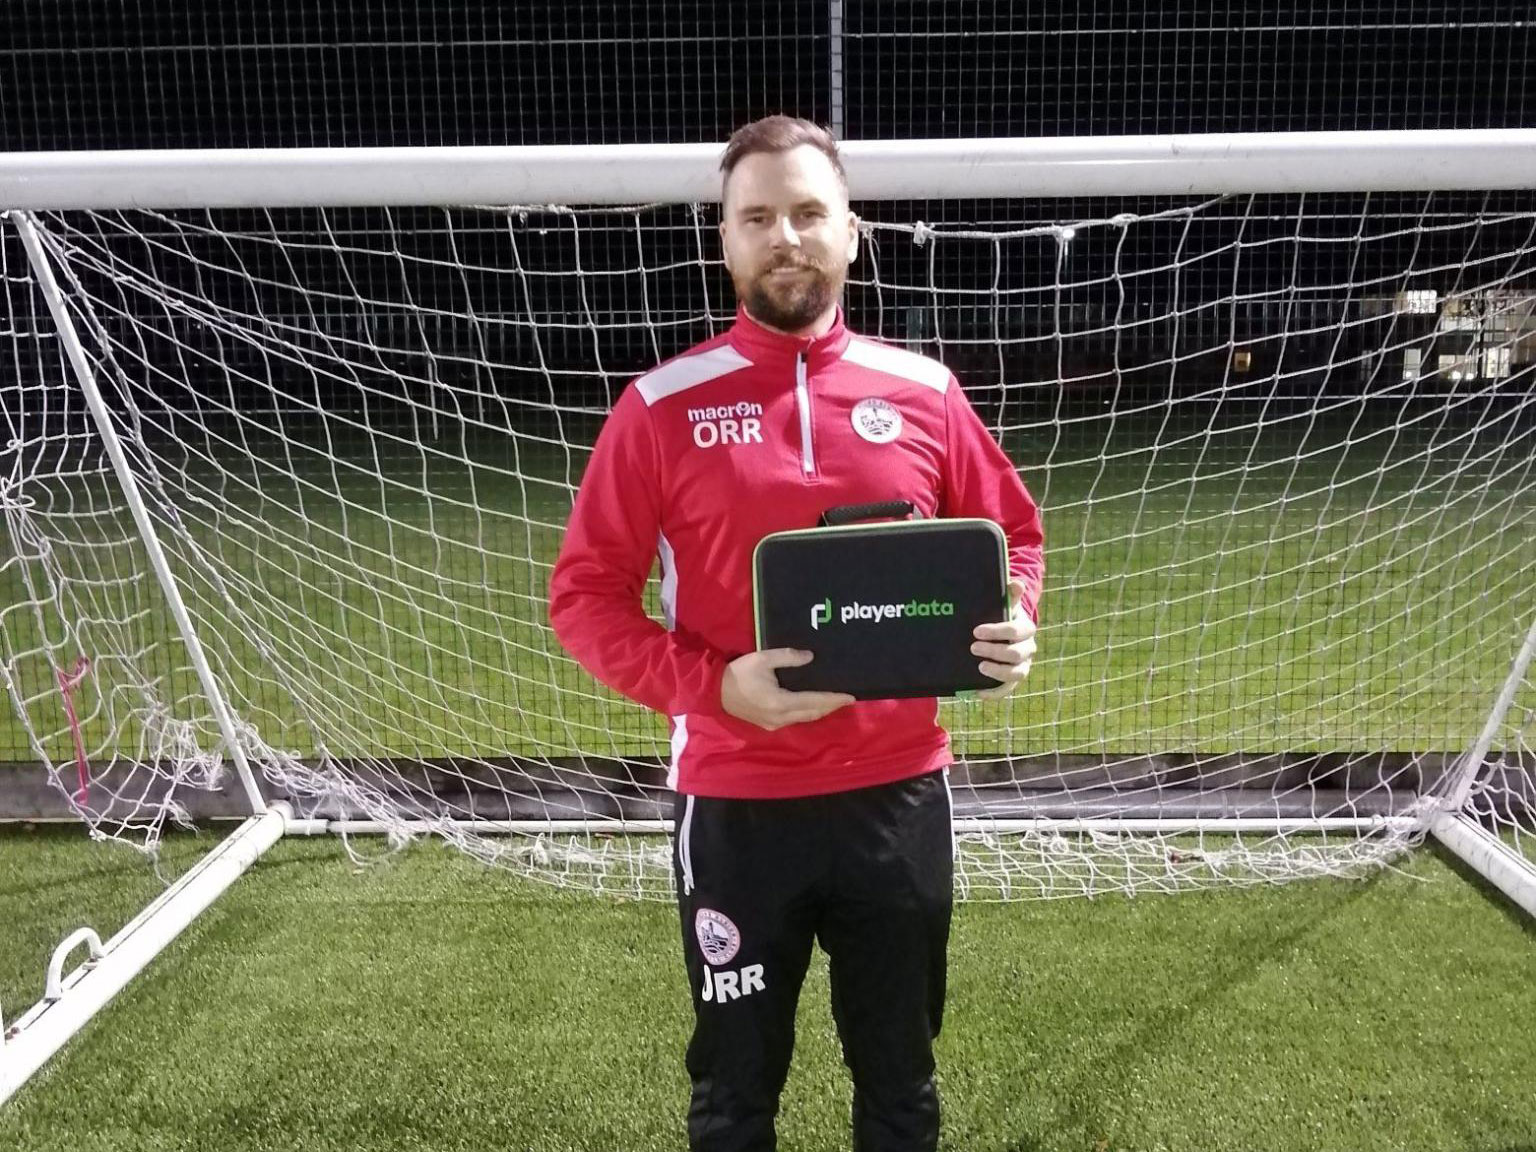 Man in front of goal holding PlayerData product